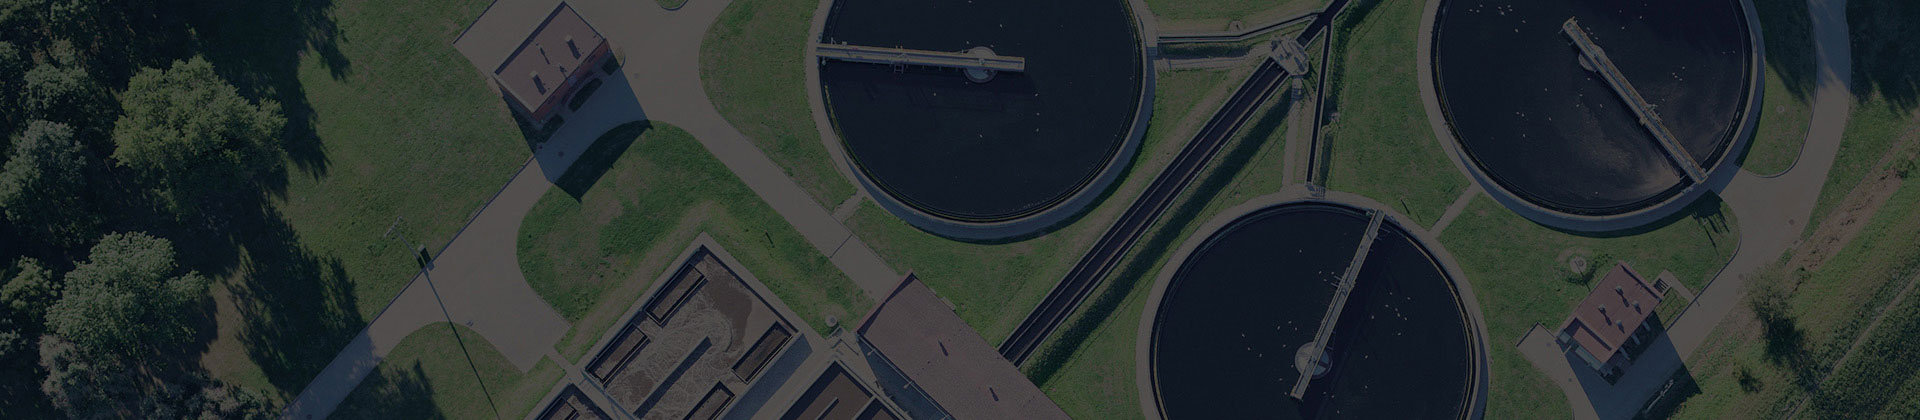 Aerial view of a wastewater treatment plant